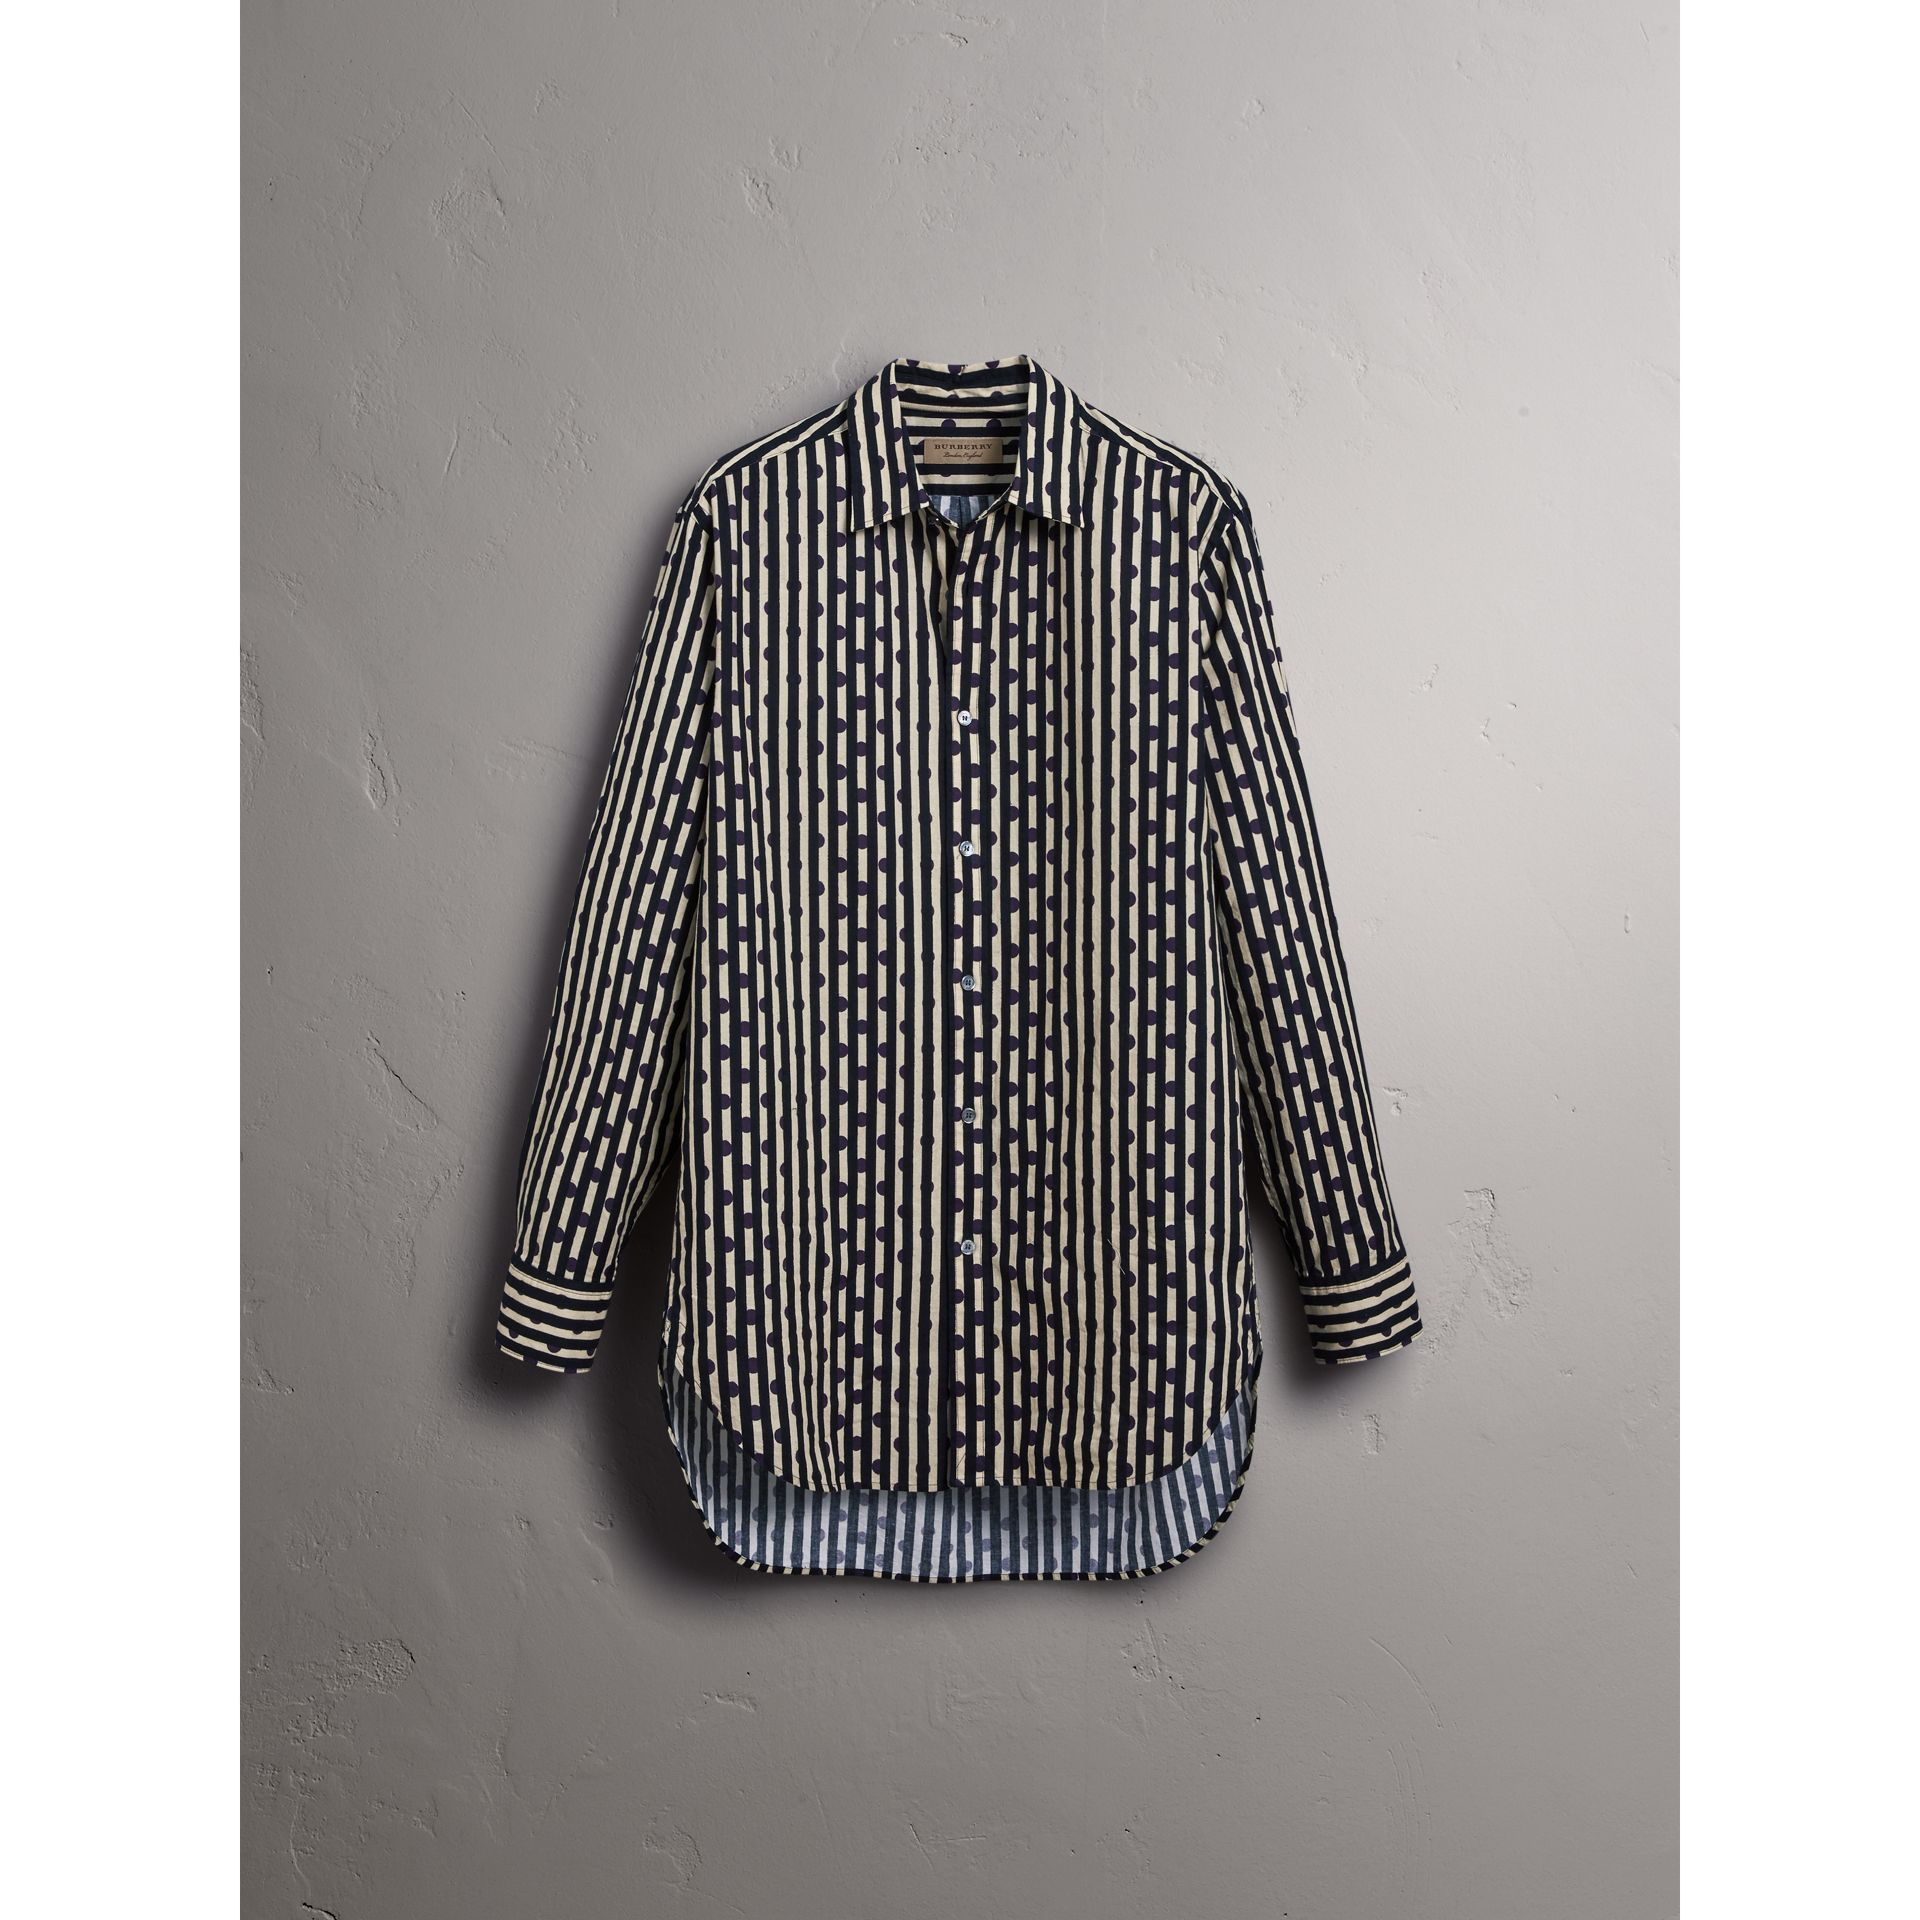 Spot and Stripe Print Cotton Shirt in Navy - Men | Burberry United States - gallery image 3